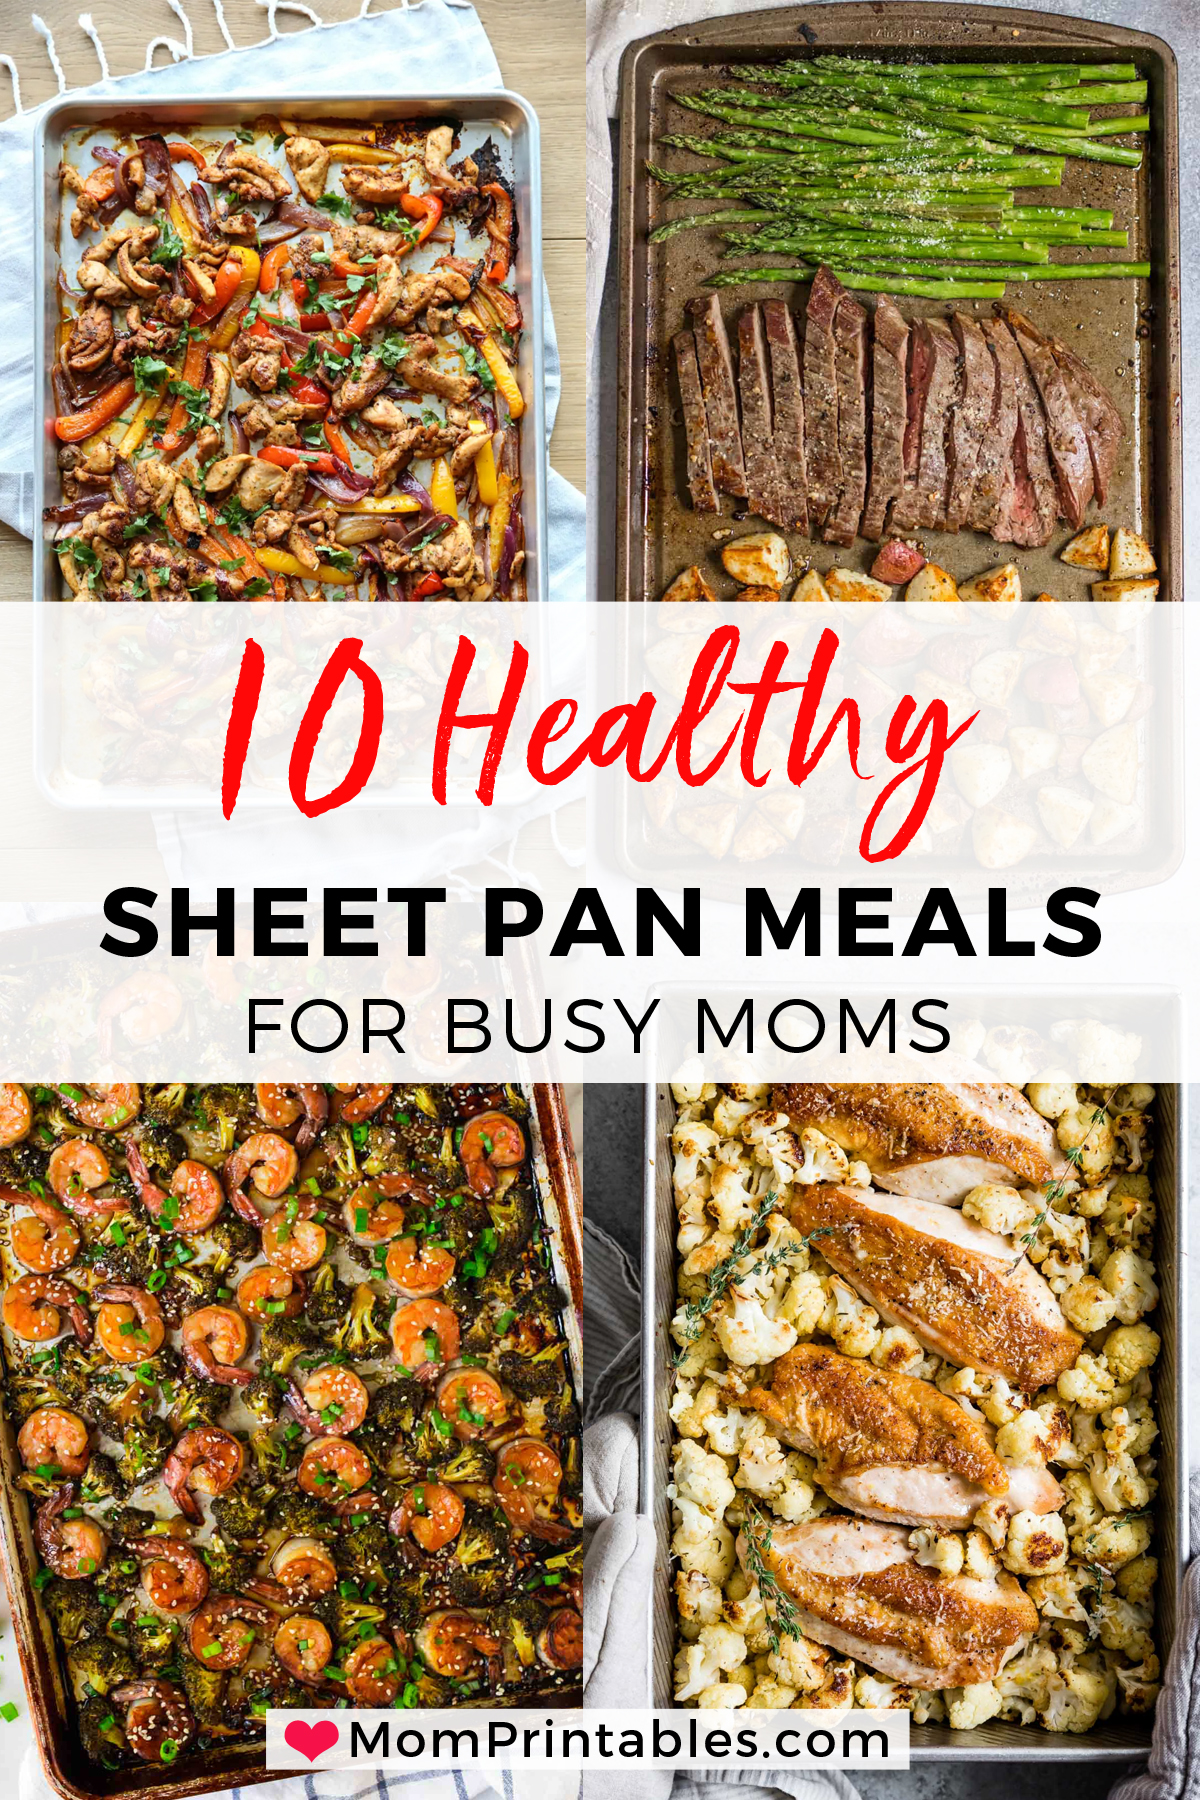 Healthy Sheet Pan Dinners To Try. I've compiled 11 healthy sheet pan dinners to try that will make weeknight meals so easy! Kid-approved, no mess, no fuss recipes for the entire family. #sheetpan #sheetpanmeal #familymeal #mealprep #weeknightmeal